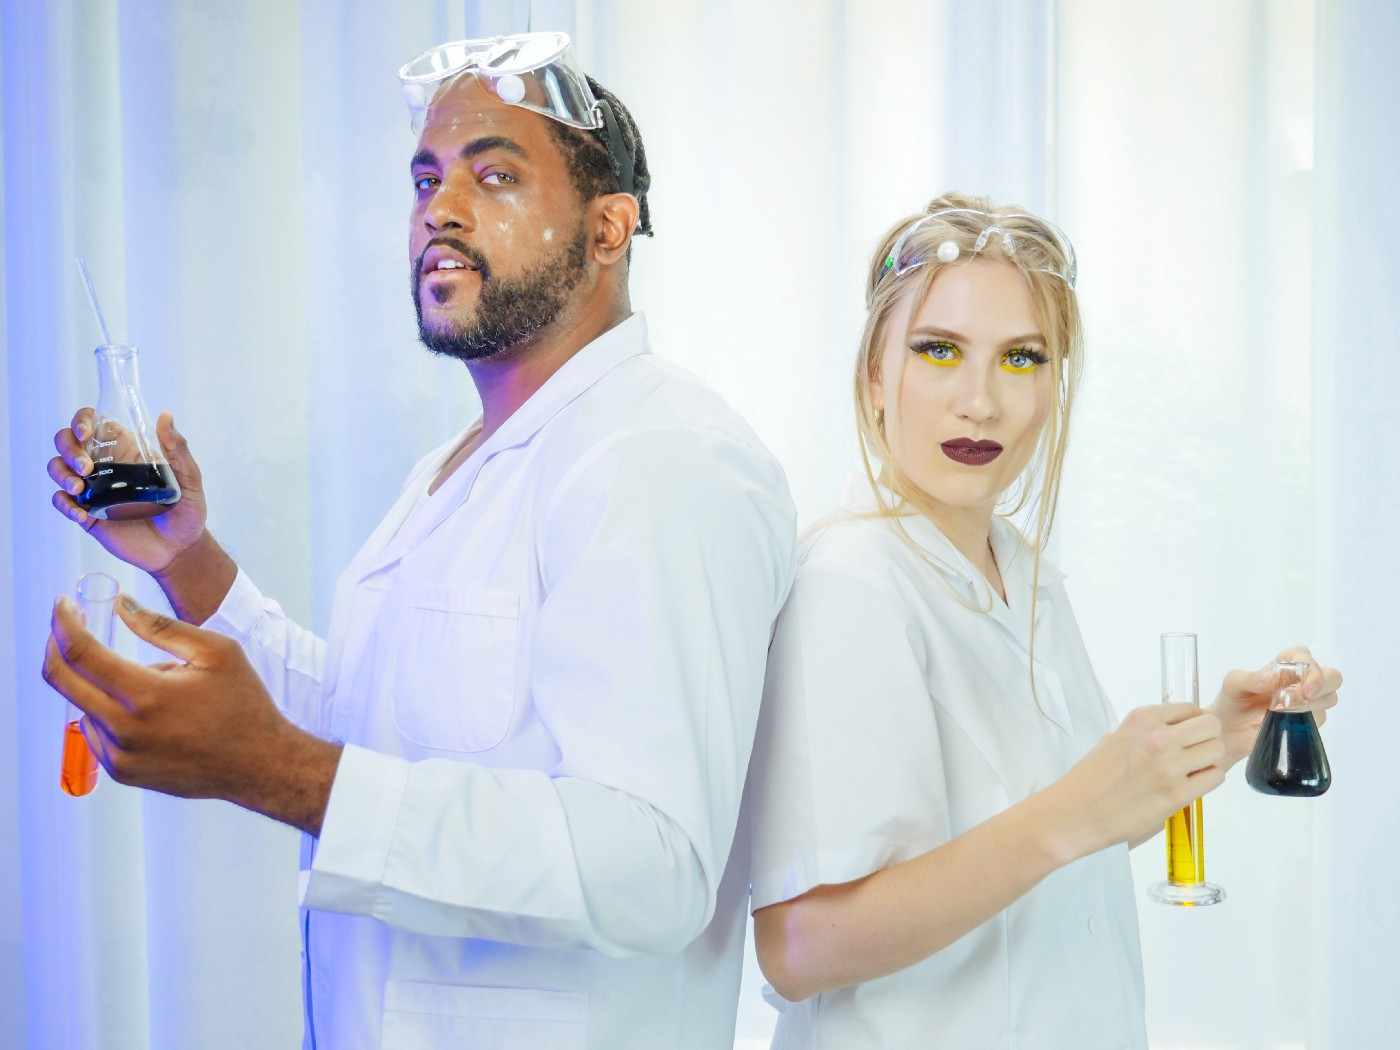 A man and a women dressed in scientists' coat hold chemicals in their hands